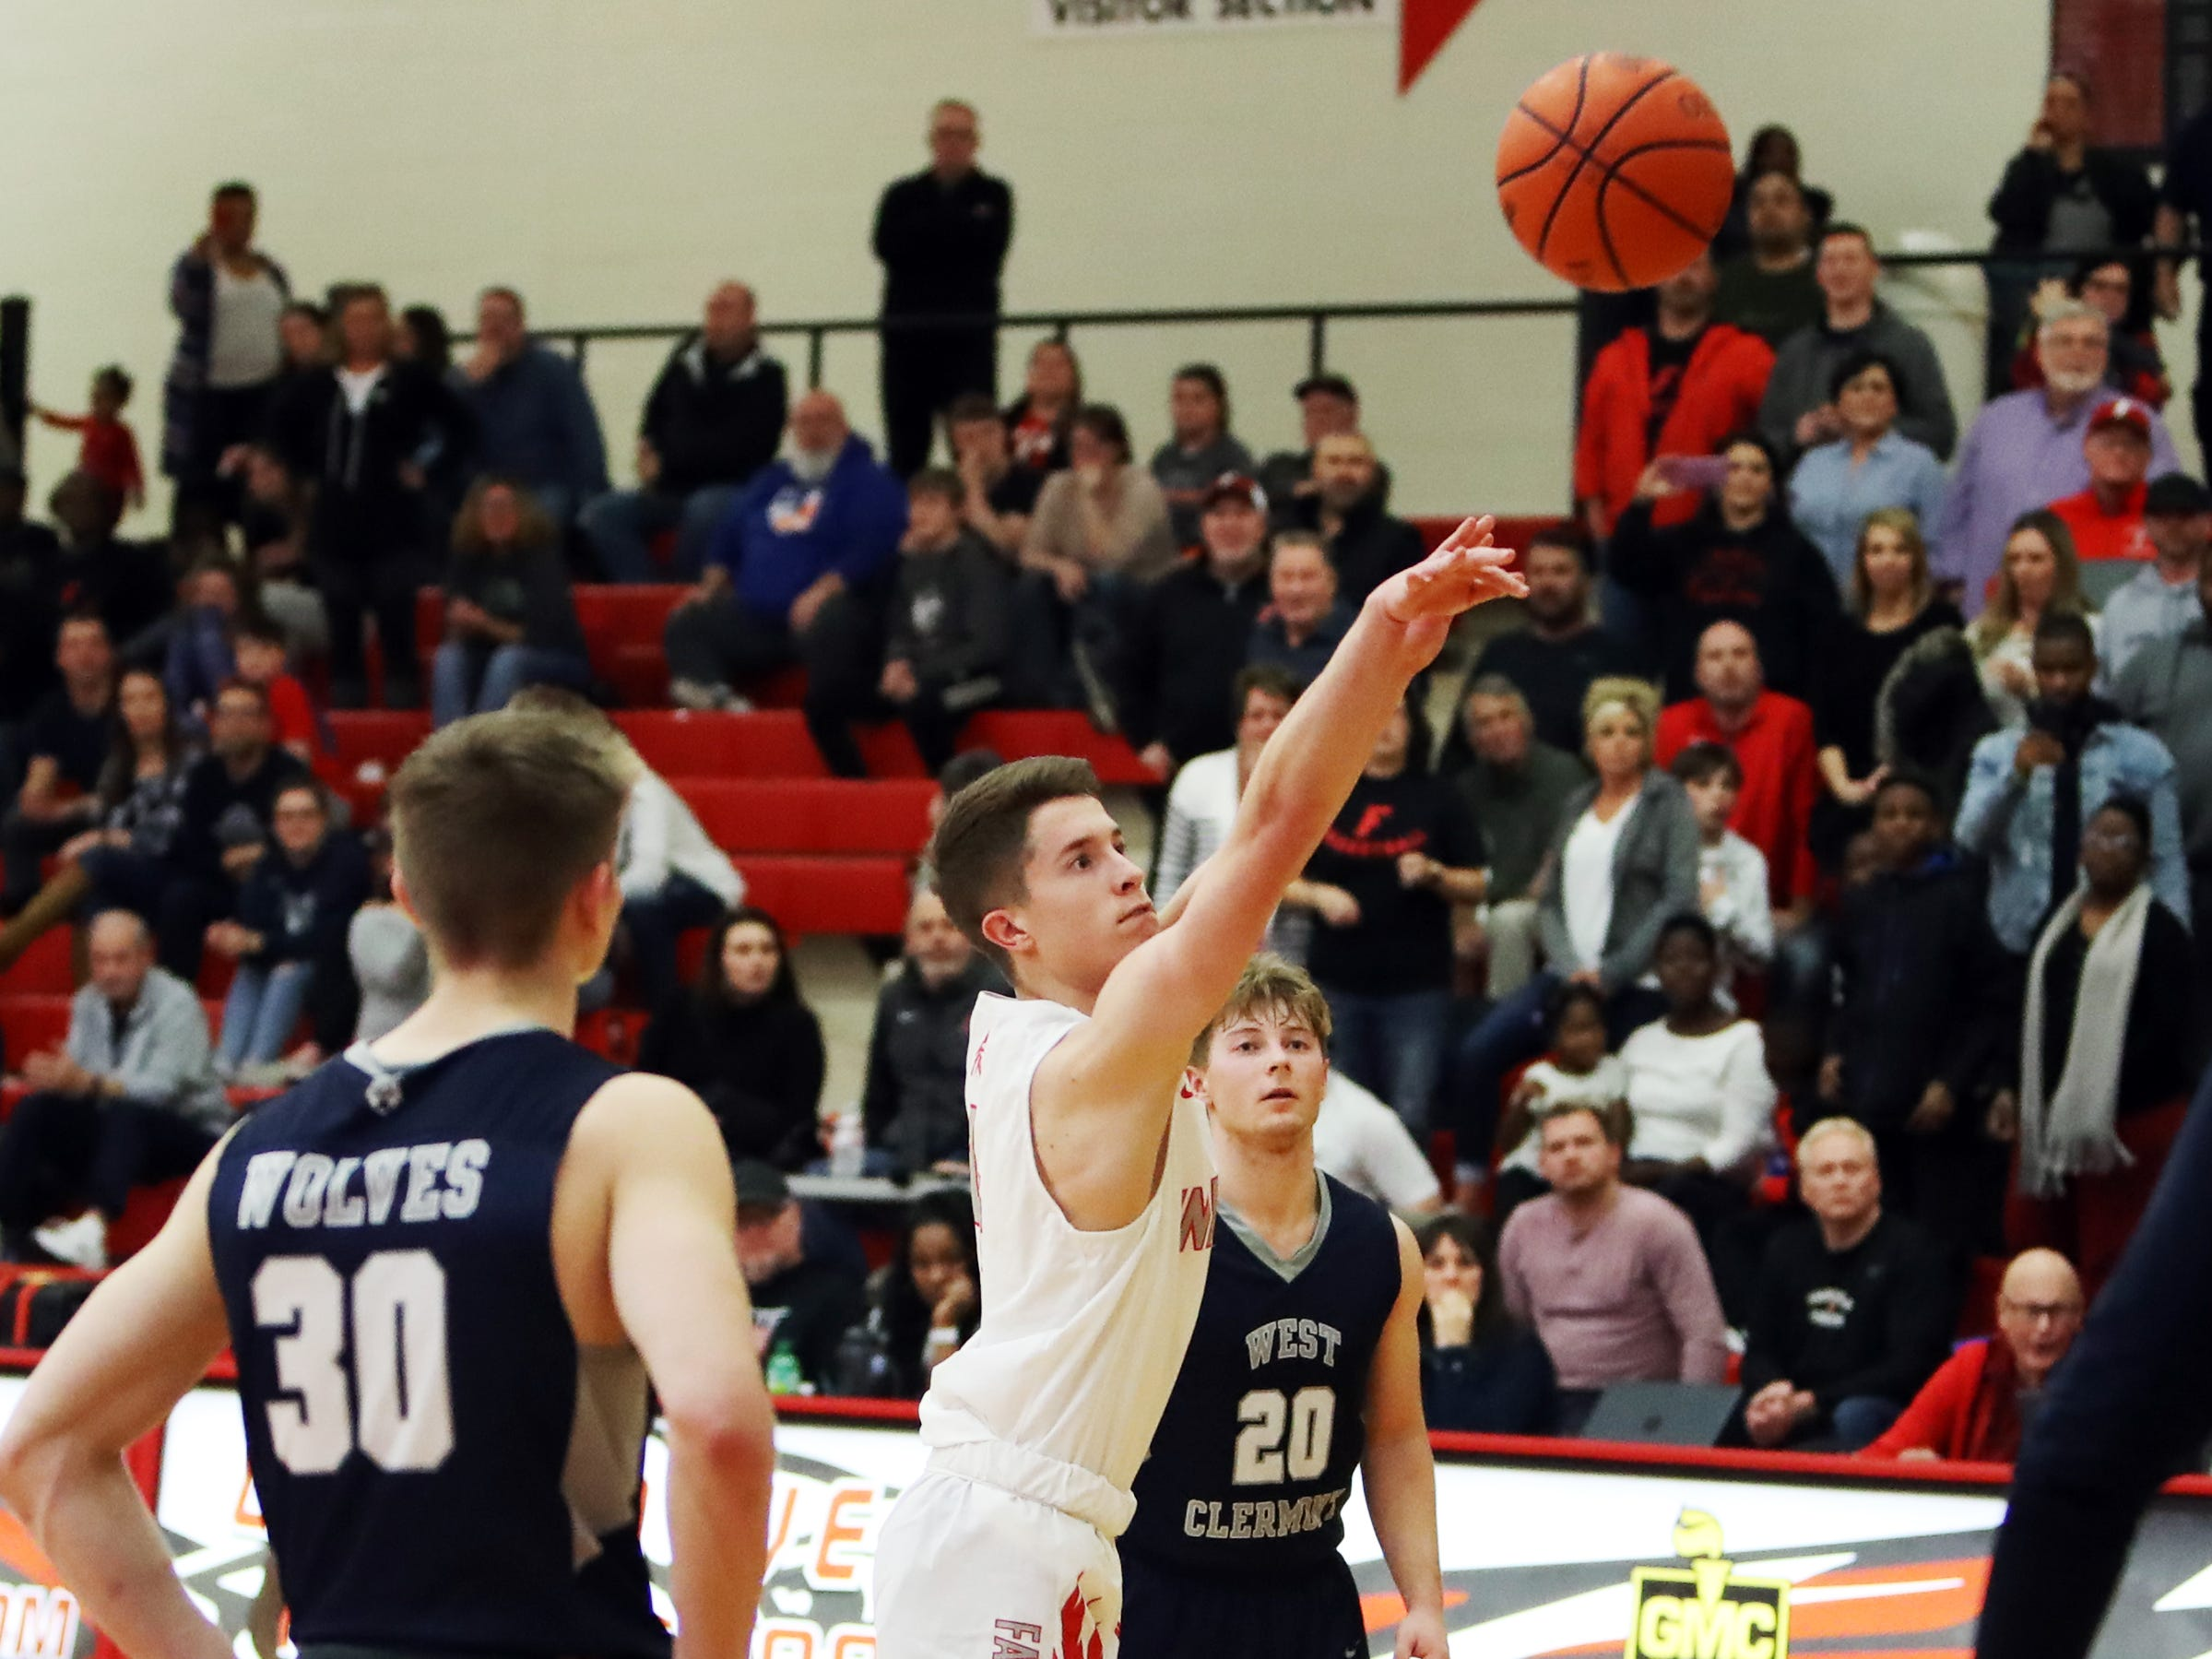 Fairfield guard Colin Singer ices the game with this free throw. Fairfield defeated West Clermont 49-46.